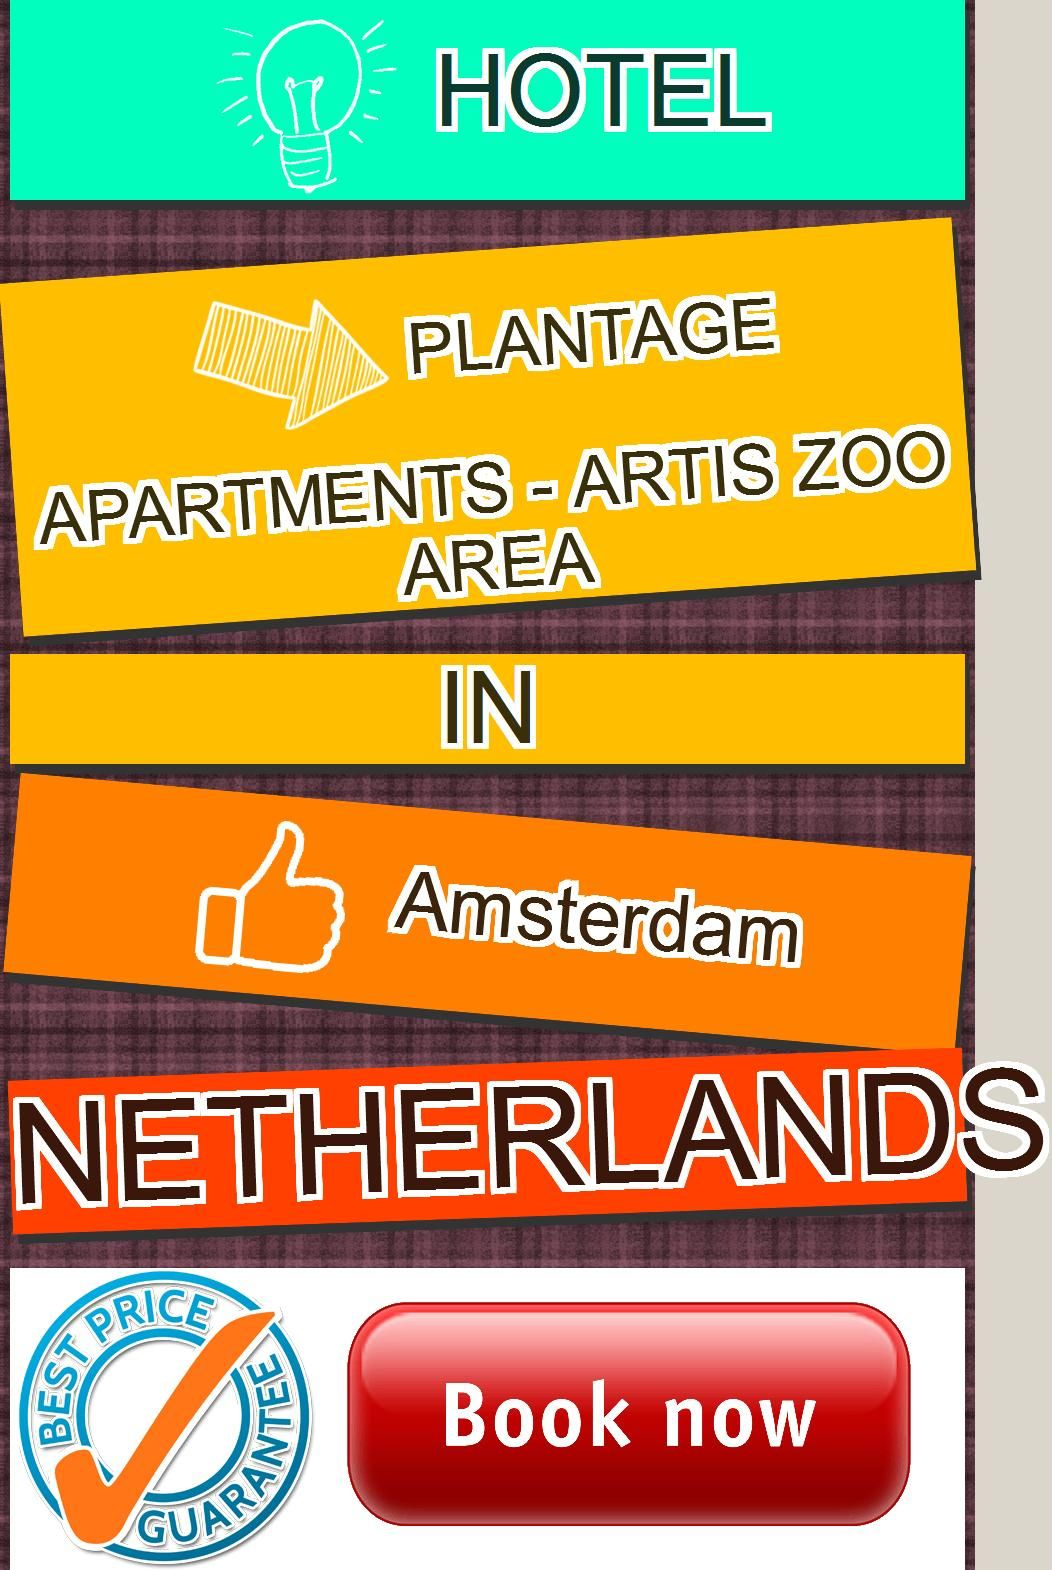 Plantage Apartments - Artis Zoo area in Amsterdam ...